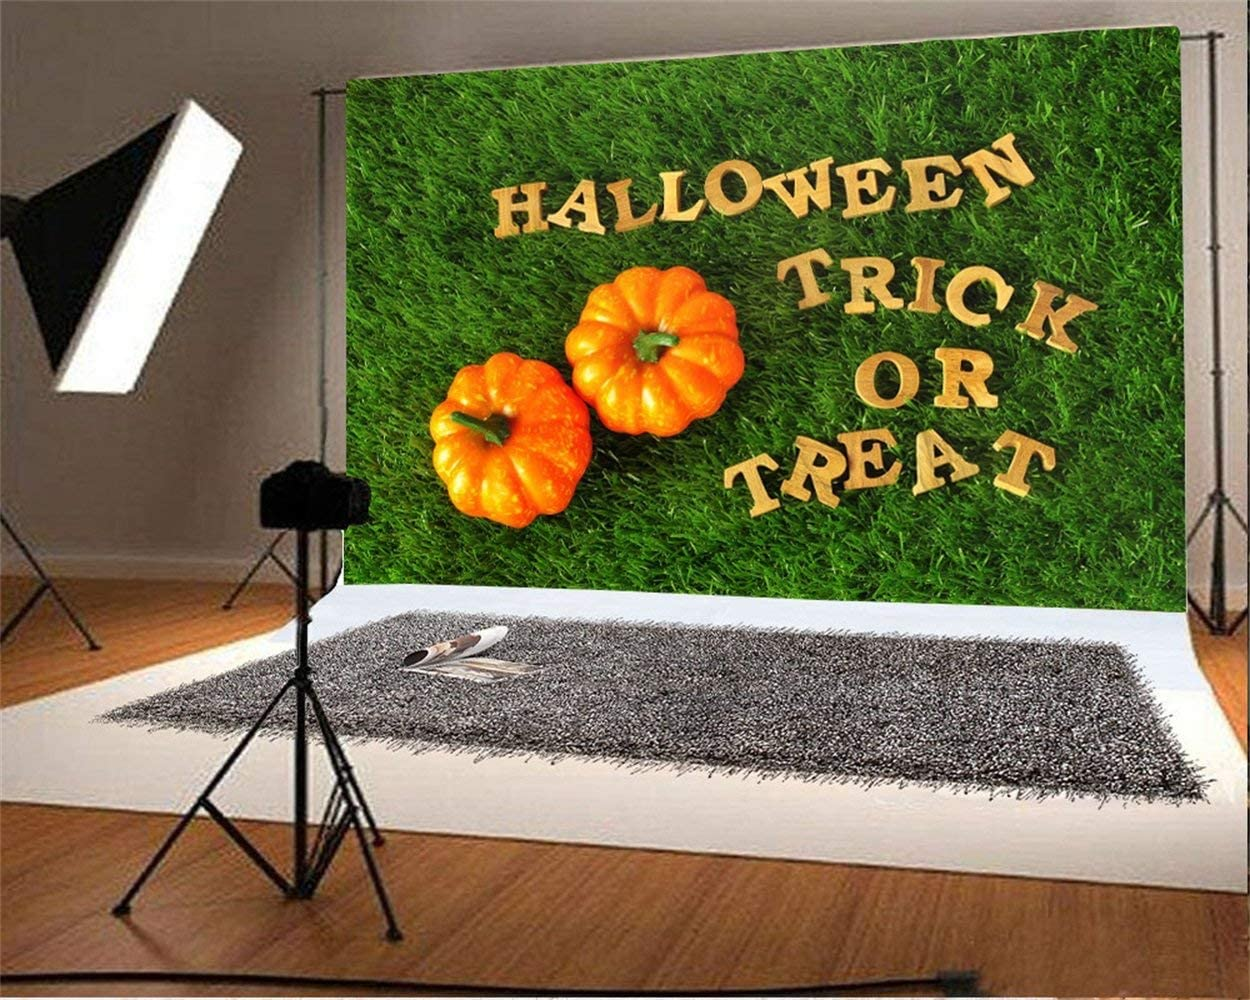 Halloween Trick or Treat Party Backdrop 10x6.5ft Polyester Photography Background Green Grassland Gloden Characters Small Cushaws Scene Kids Baby Shoot Kids Room Decorative Wallpaper Horror Night